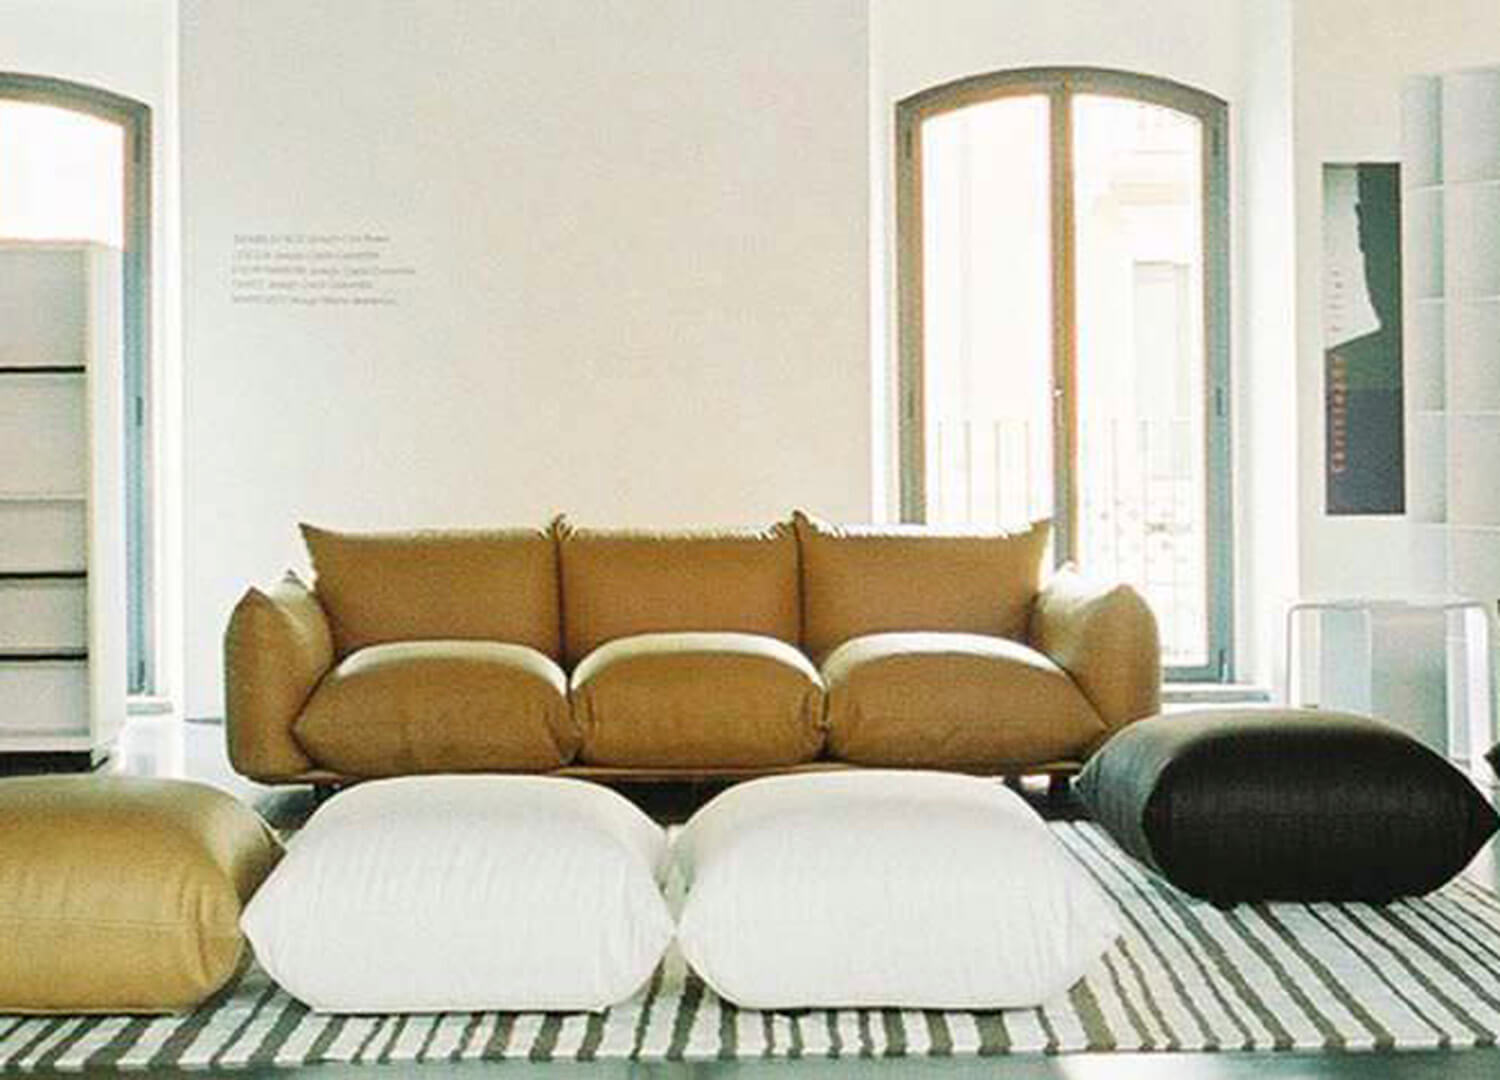 Marenco Sofa Est Living Products